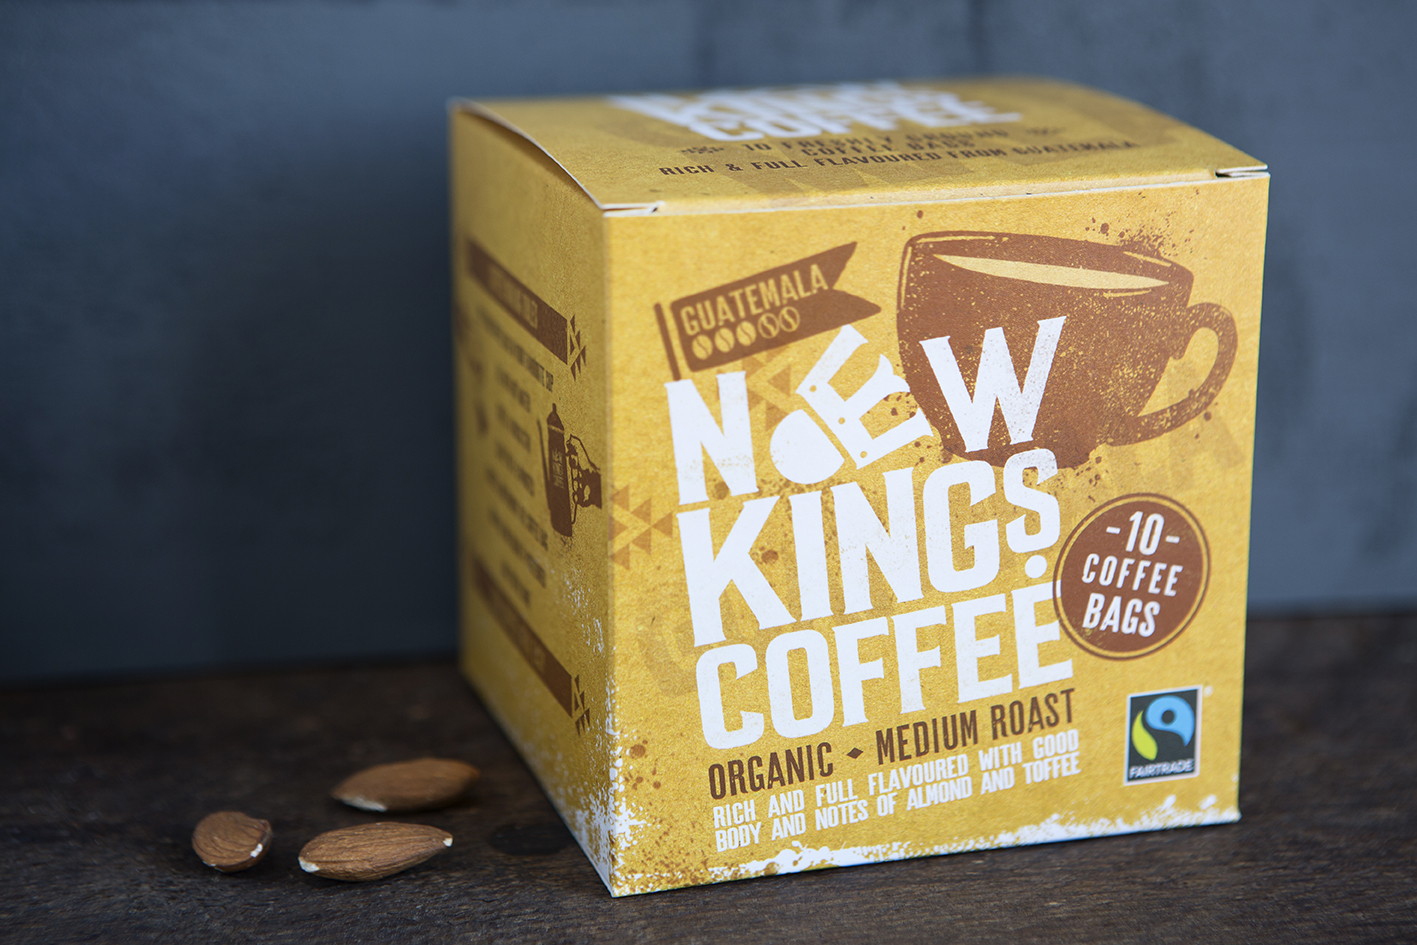 New-Kings-Coffee-Bags-Fairtrade-Organic-Medium-Roast-10.jpg